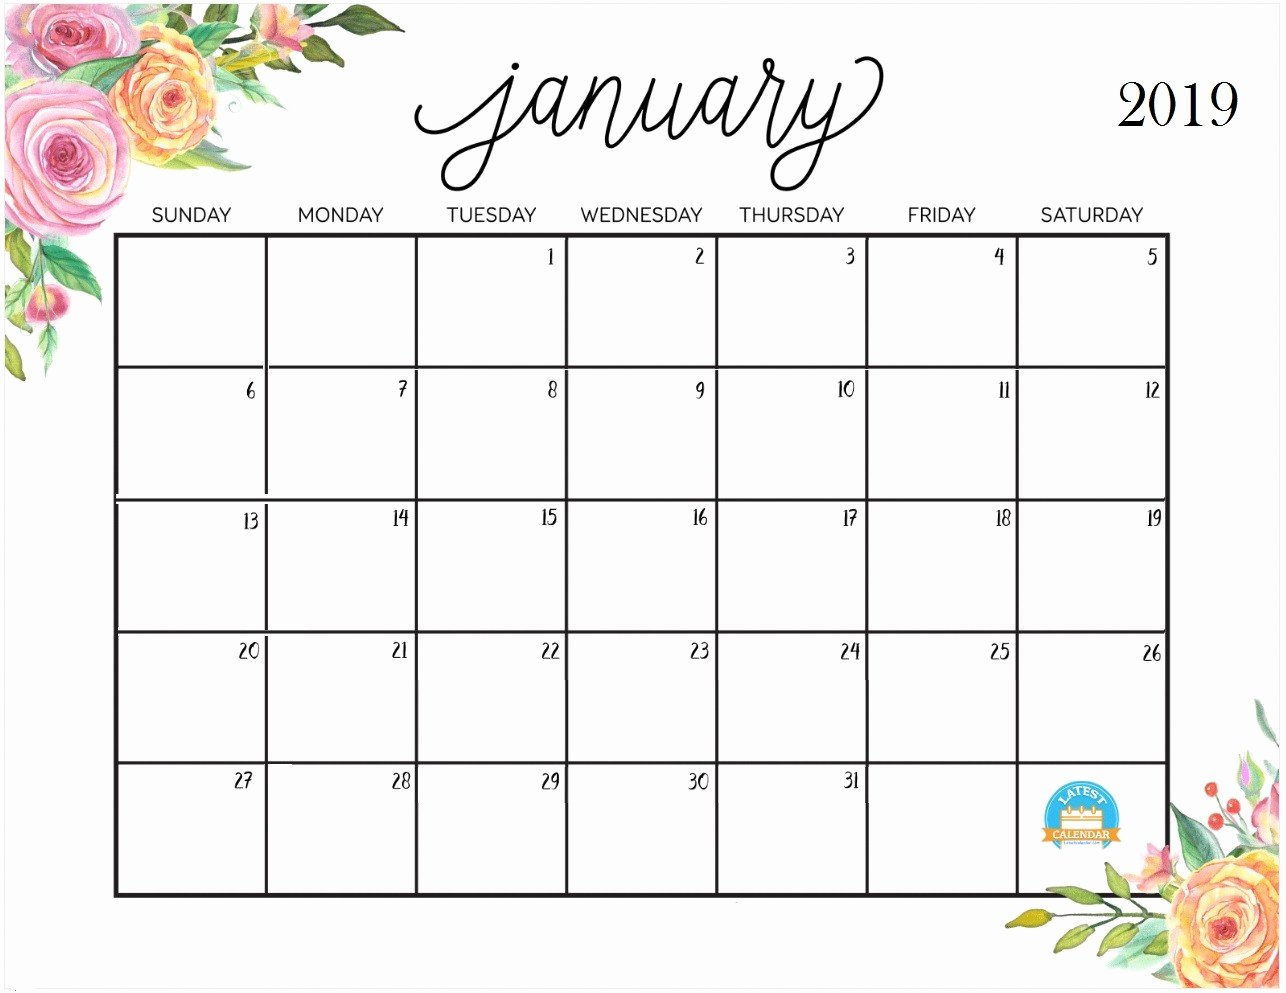 Cute Calendar Template 2019 Awesome January 2019 Calendar Cute Template Blank Printable with